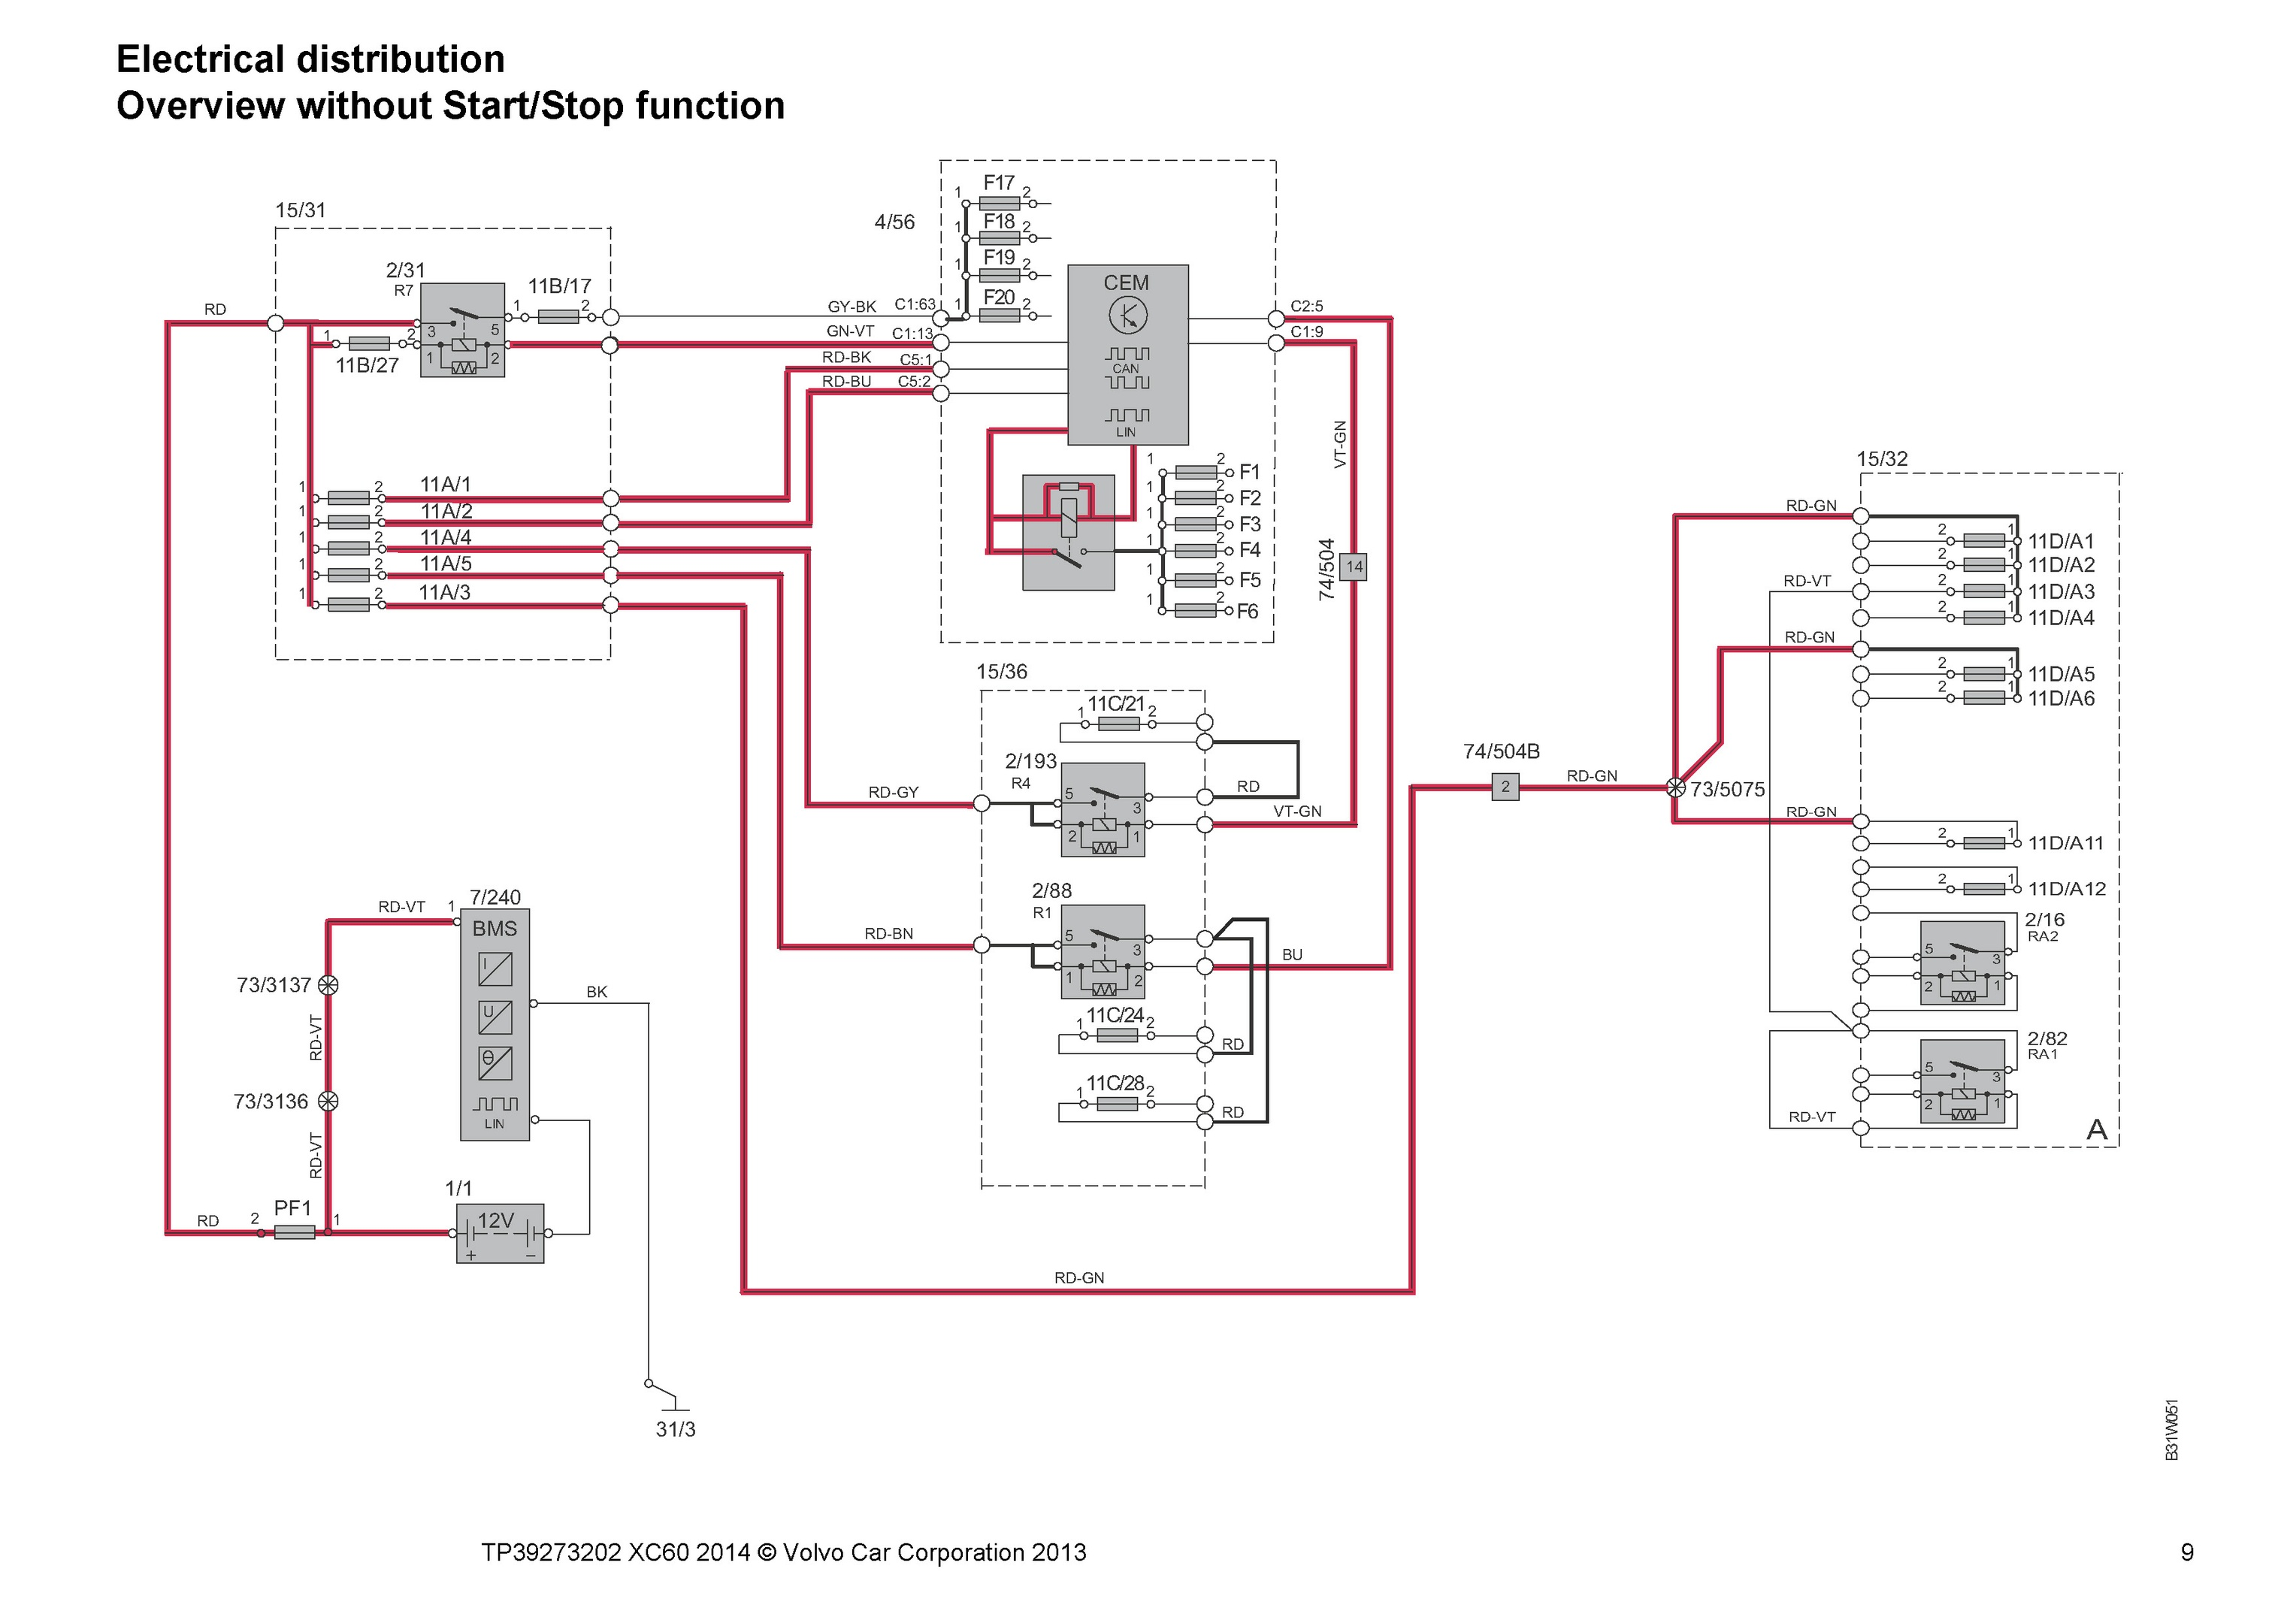 2001 Volvo Wiring Diagram 2015 S60 Download Diagrams Xc60 Immobilizer